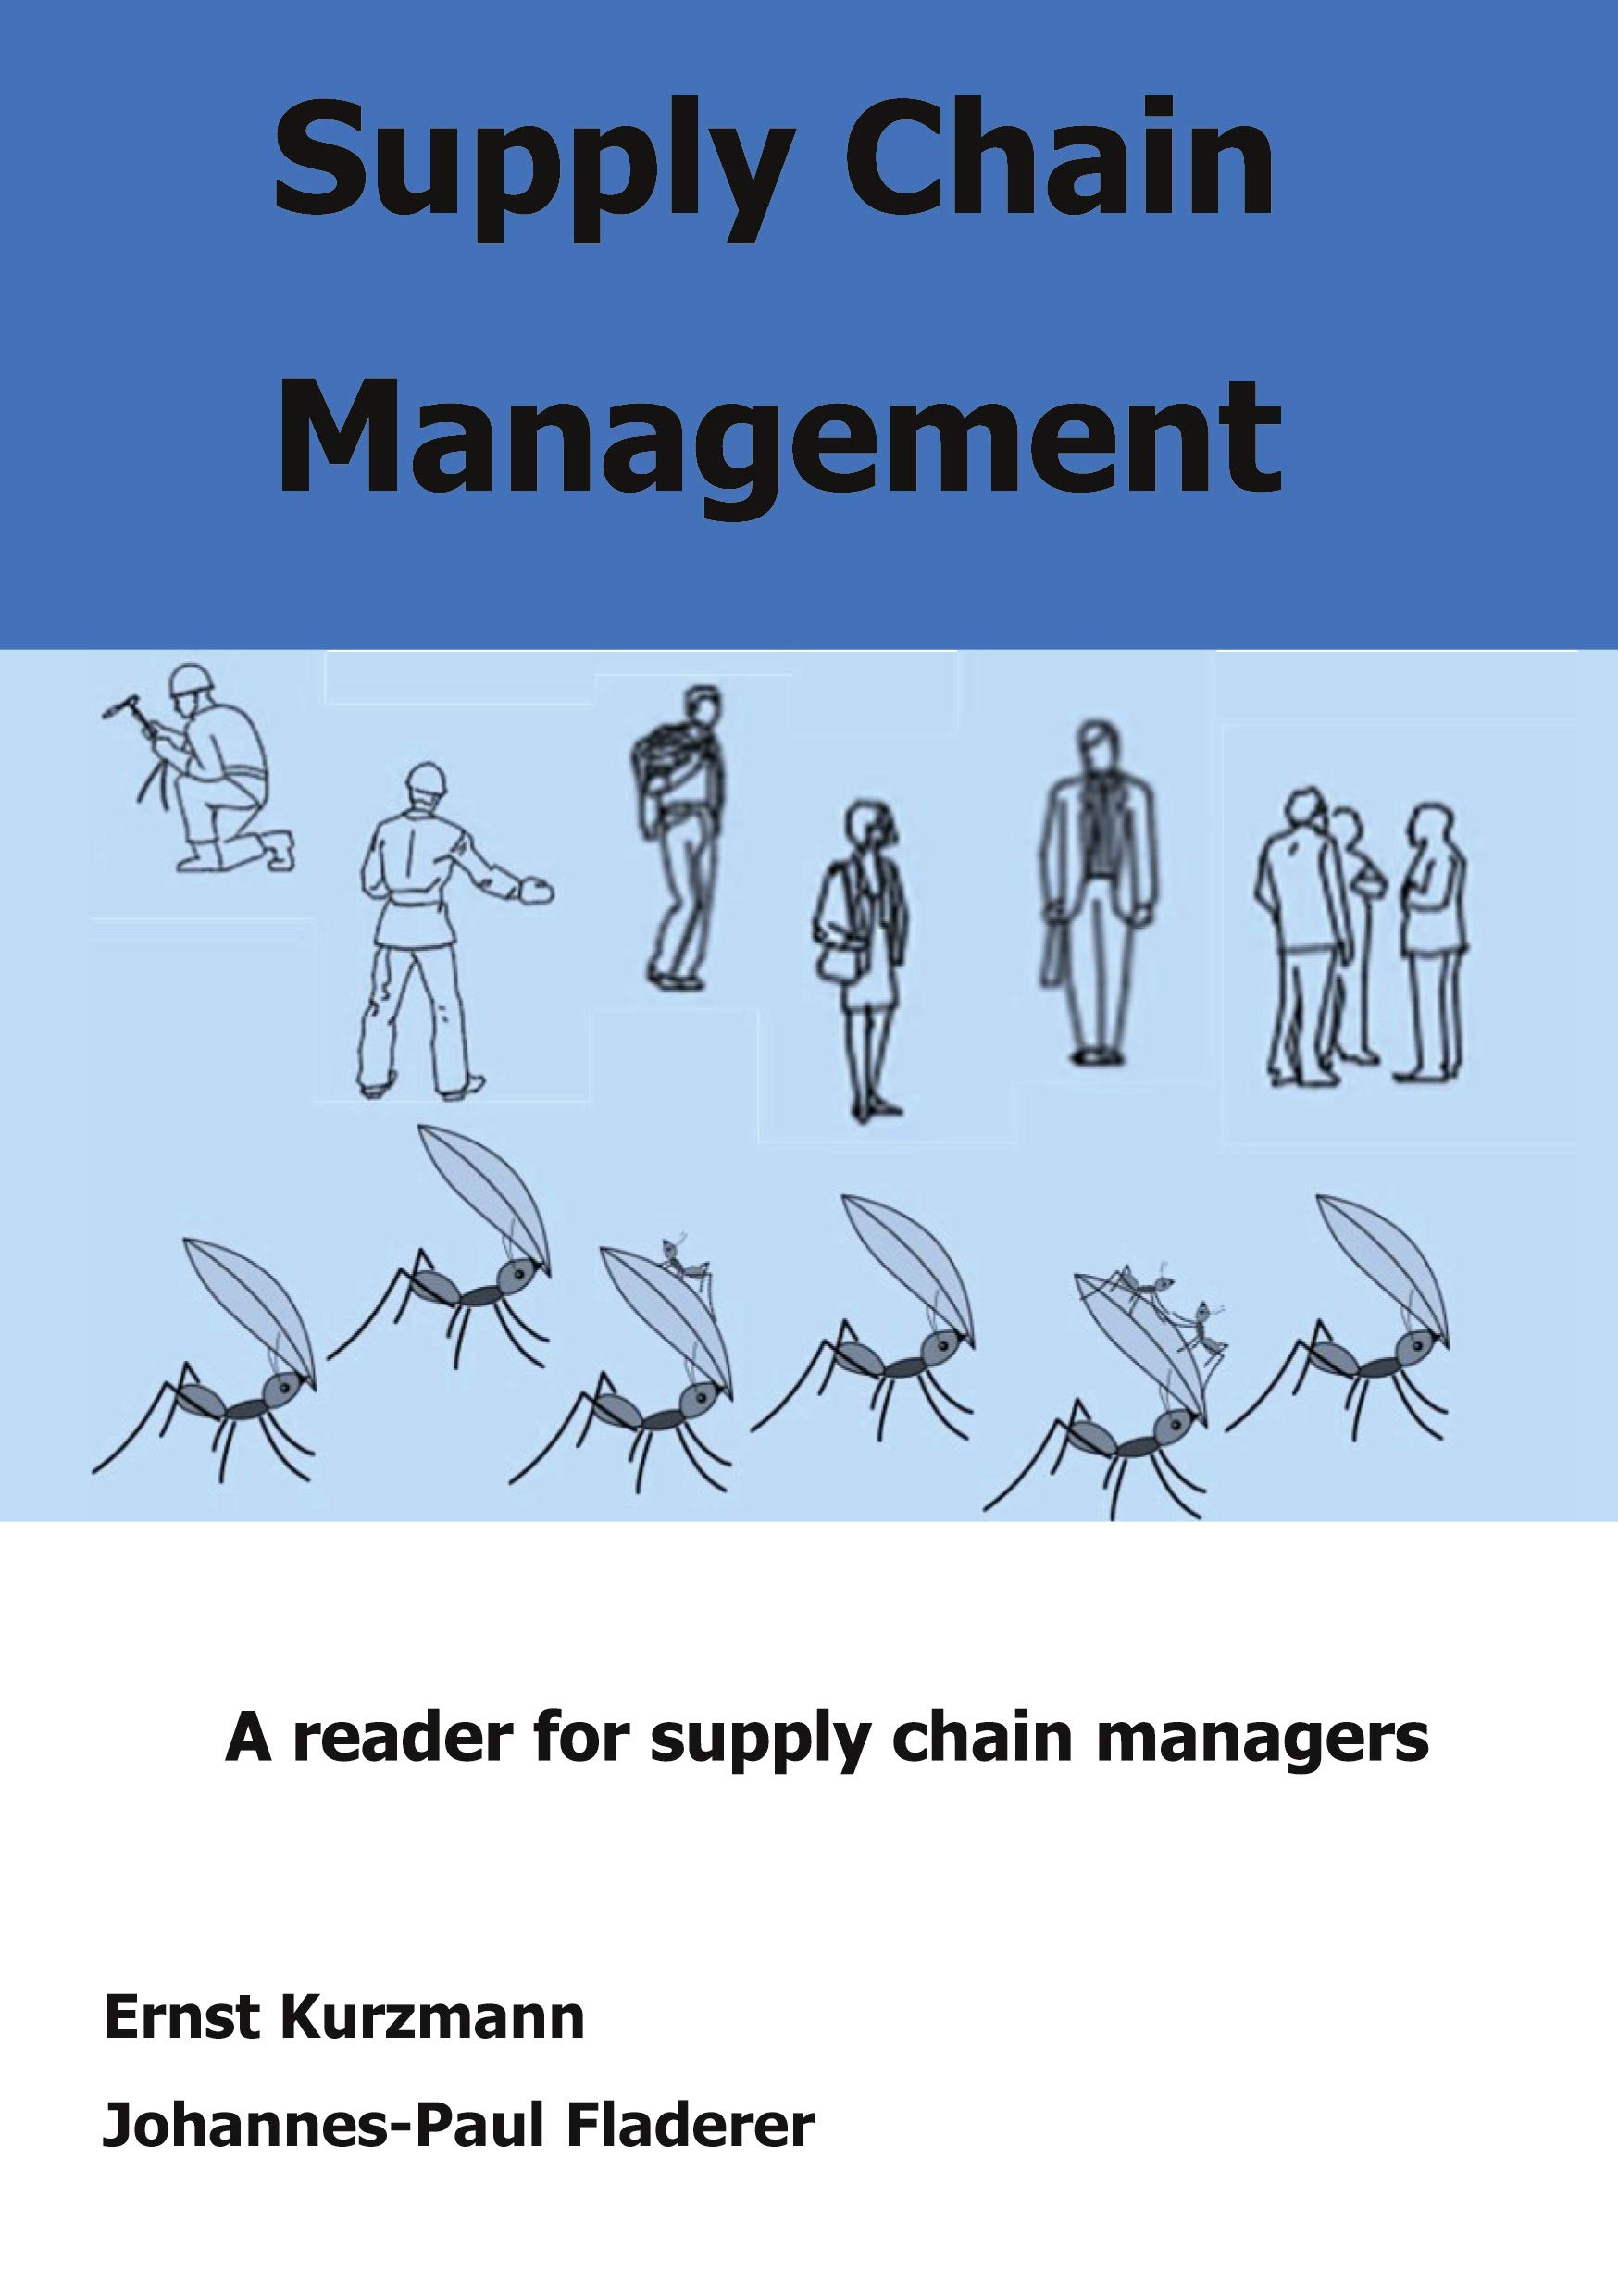 Supply Chain Management: A reader for supply chain managers